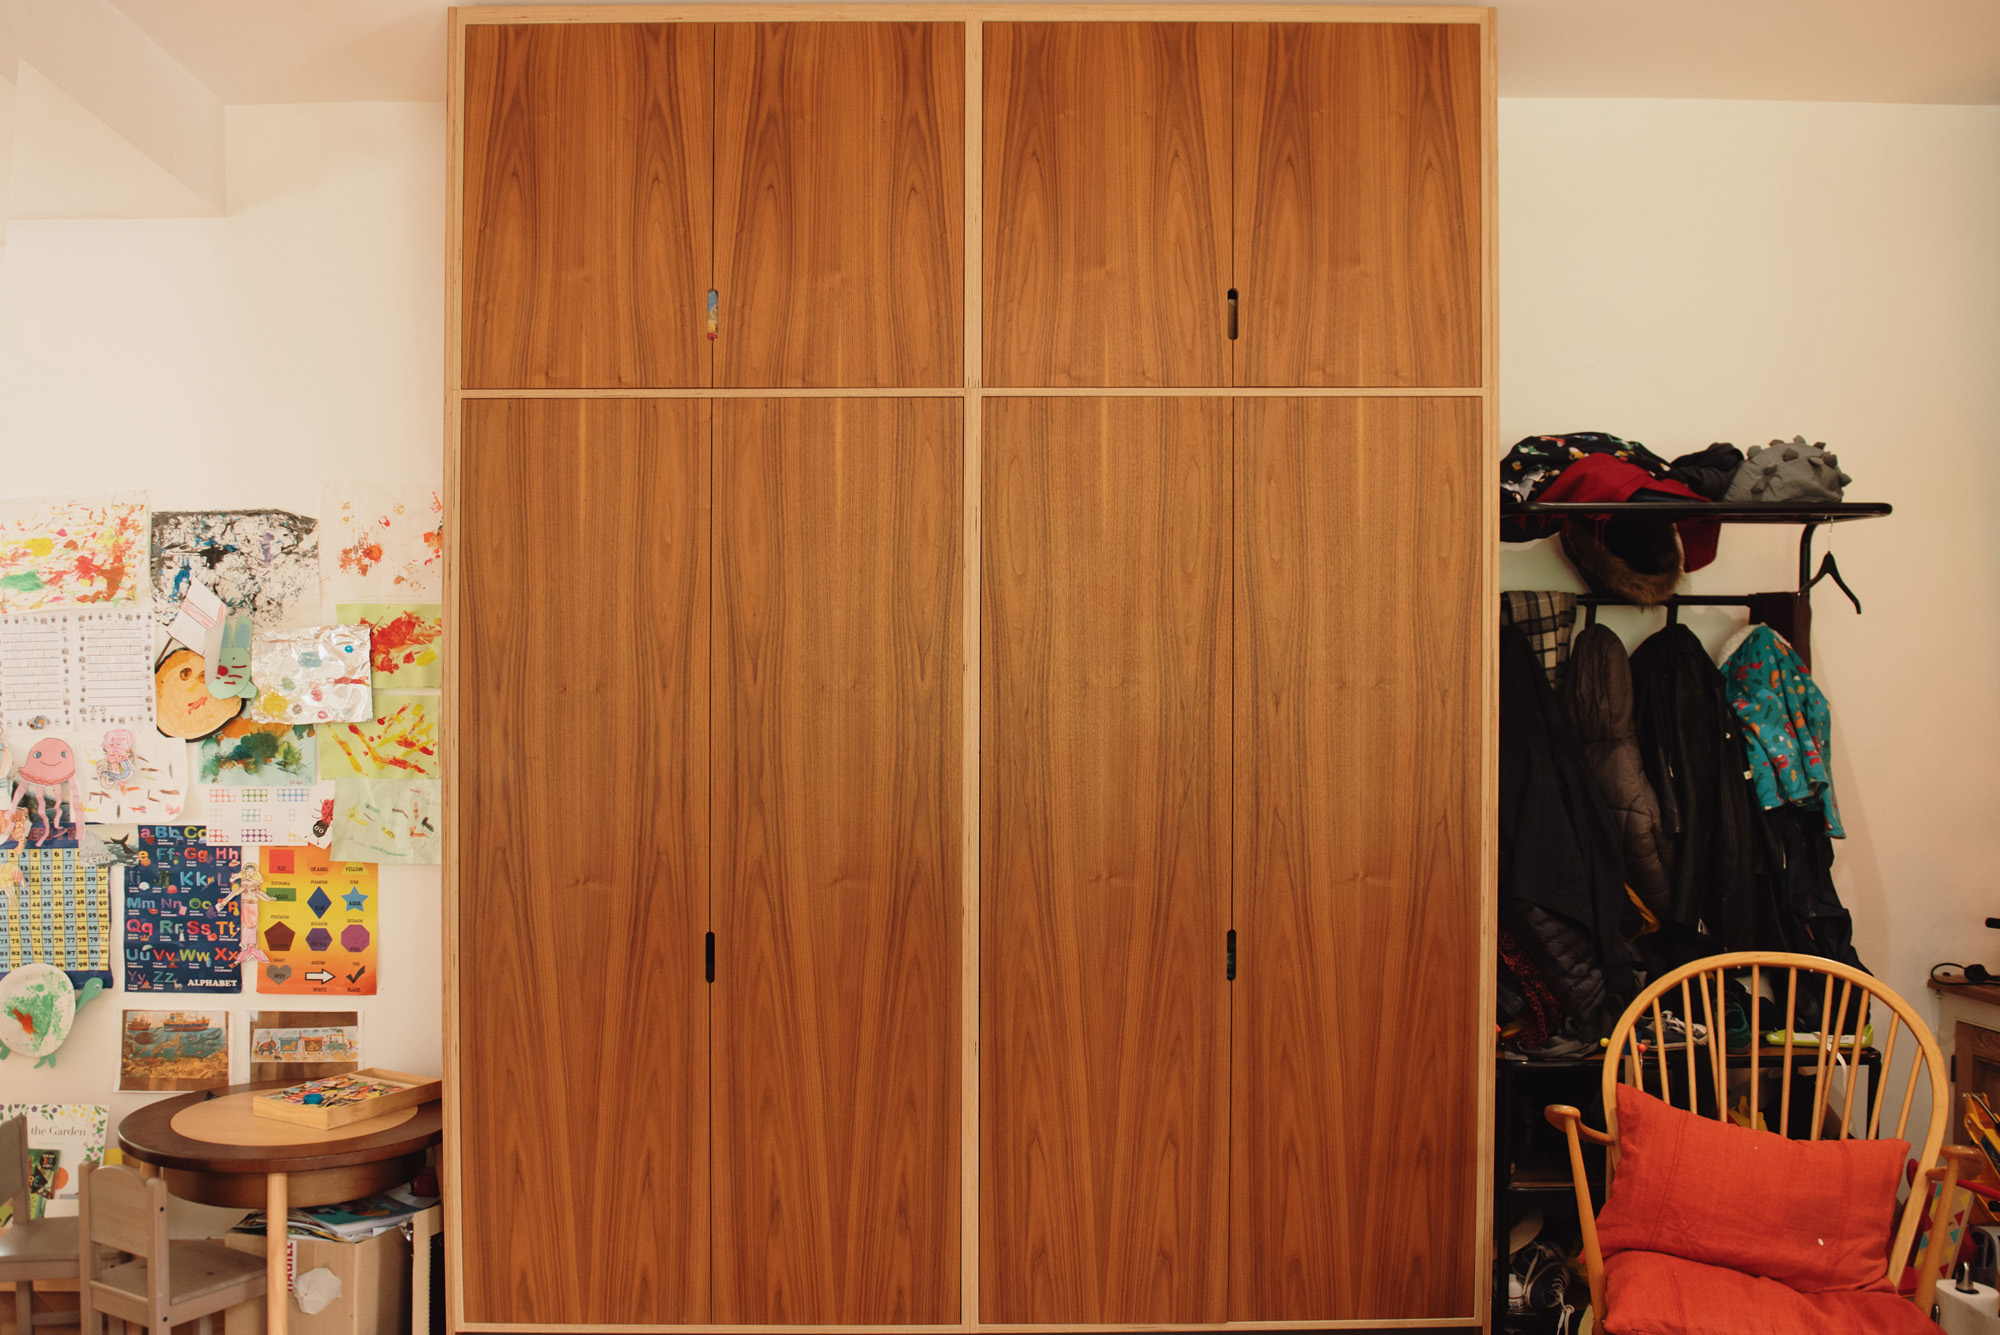 Wall to ceiling storage cabinets